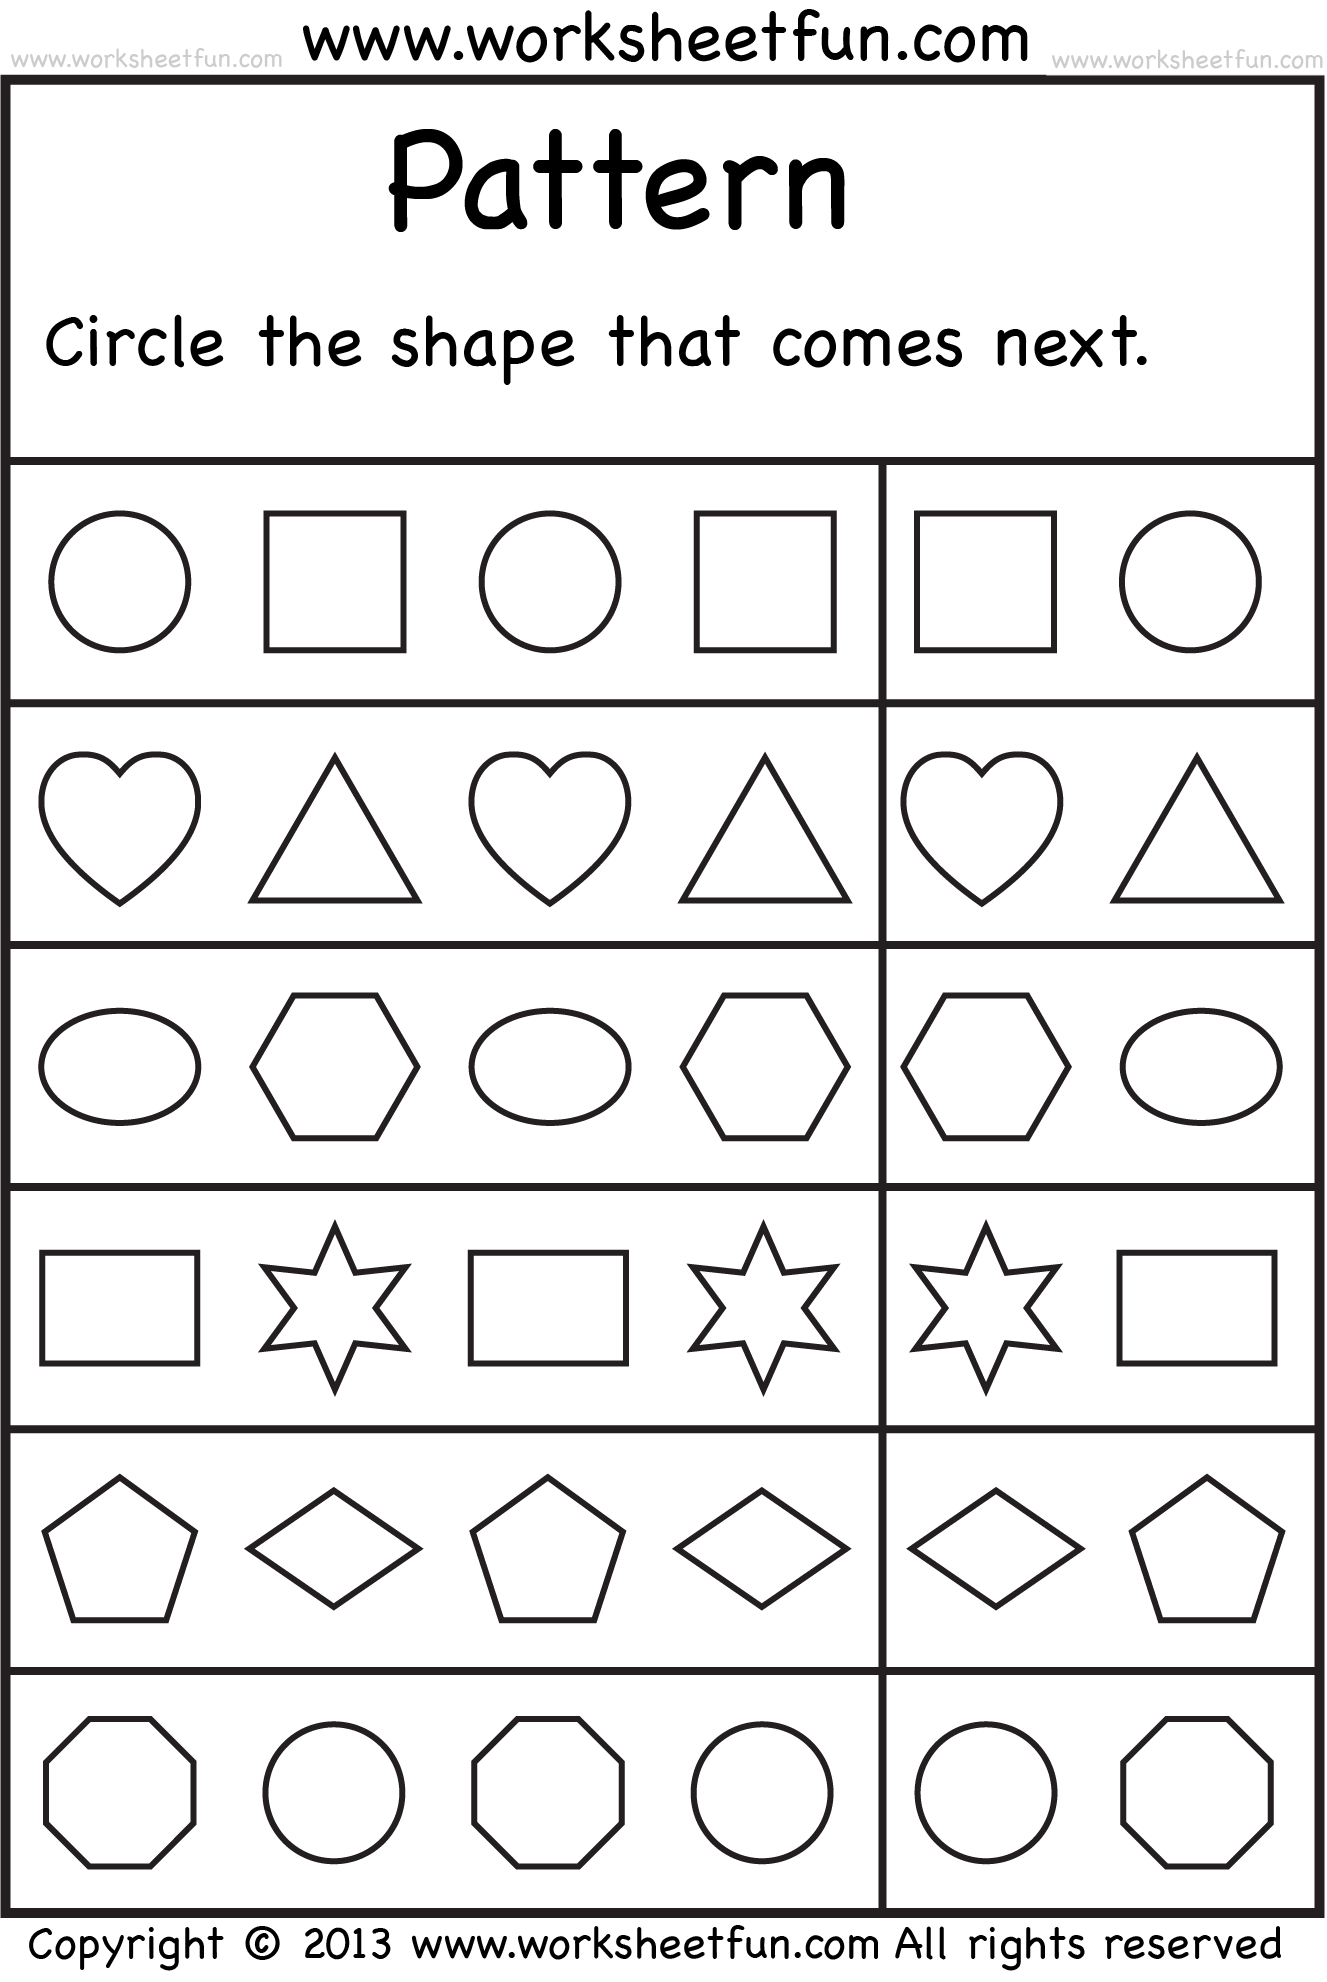 Weirdmailus  Remarkable  Images About School Worksheets On Pinterest  Number Words  With Entrancing  Images About School Worksheets On Pinterest  Number Words Alphabet Worksheets And Free Printable Kindergarten Worksheets With Beauteous Shapes Math Worksheets Also Easter Worksheets For Third Grade In Addition Telling Time Spanish Worksheet And Key Stage  Comprehension Worksheets As Well As Maths Rounding Worksheets Additionally Pirates Past Noon Worksheets From Pinterestcom With Weirdmailus  Entrancing  Images About School Worksheets On Pinterest  Number Words  With Beauteous  Images About School Worksheets On Pinterest  Number Words Alphabet Worksheets And Free Printable Kindergarten Worksheets And Remarkable Shapes Math Worksheets Also Easter Worksheets For Third Grade In Addition Telling Time Spanish Worksheet From Pinterestcom